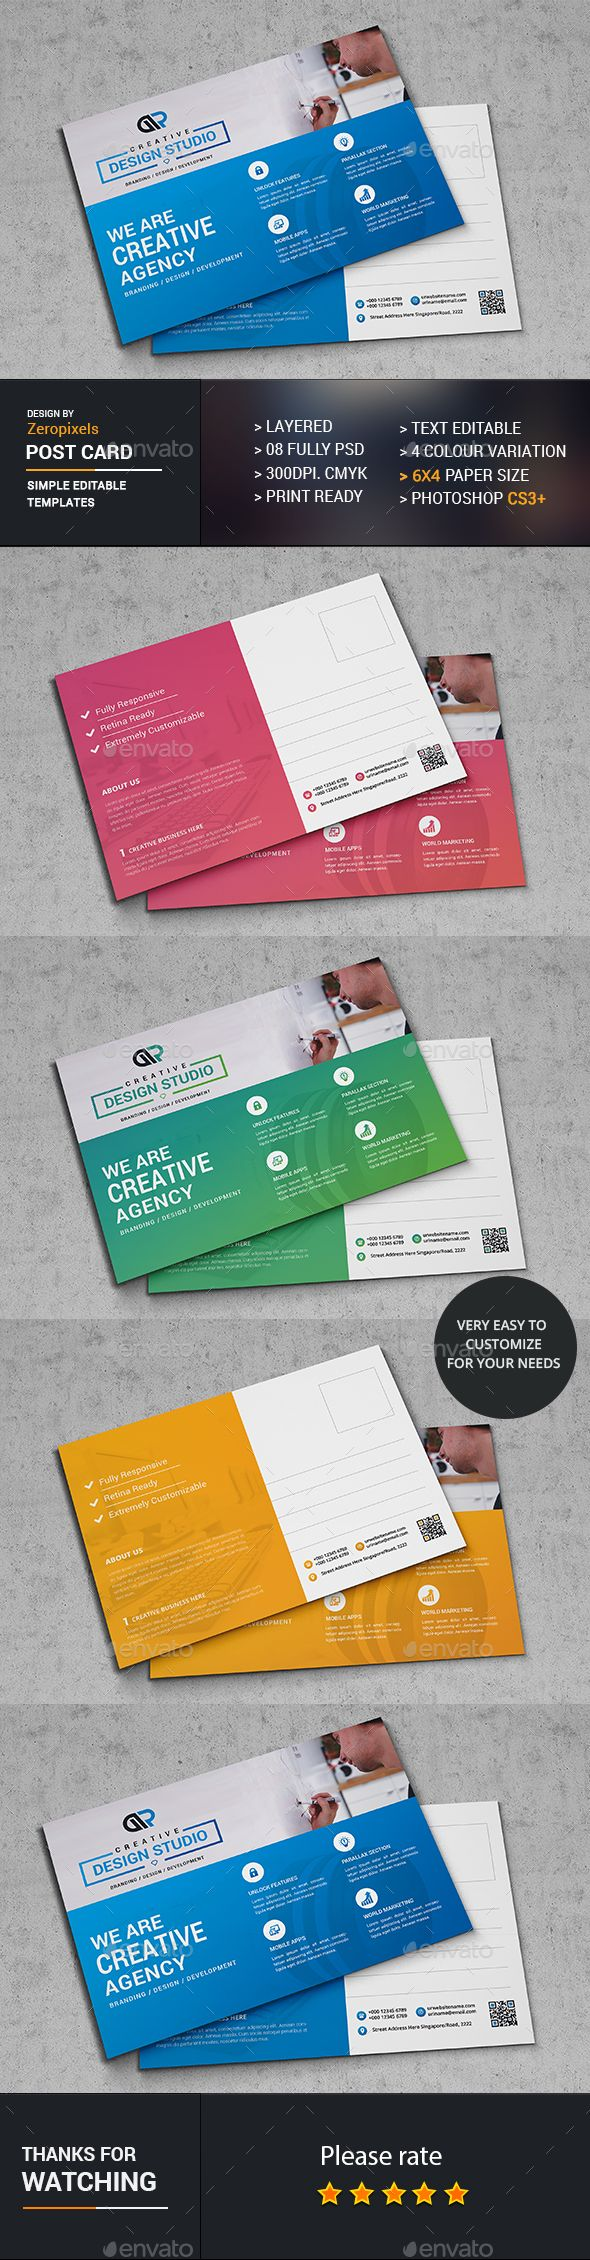 Web PostCard Template PSD. Download here: http://graphicriver.net ...